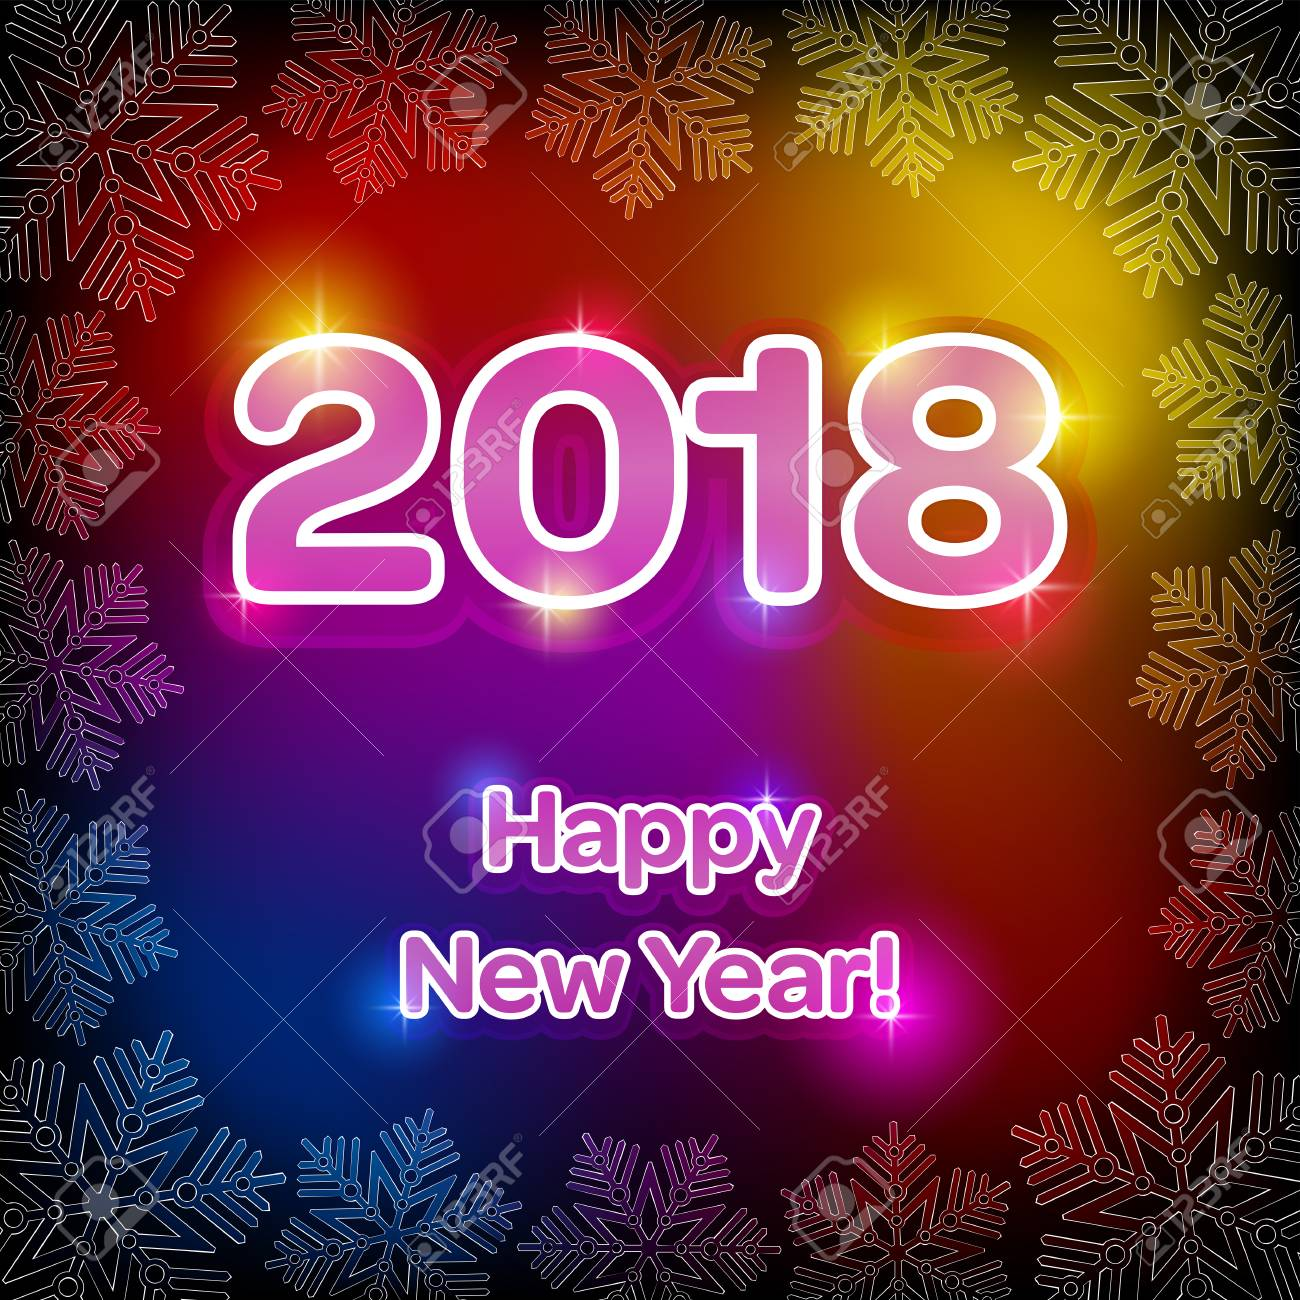 Illustration of happy new 2018 year greeting on a colorful illustration of happy new 2018 year greeting on a colorful background stock vector 87912835 kristyandbryce Image collections